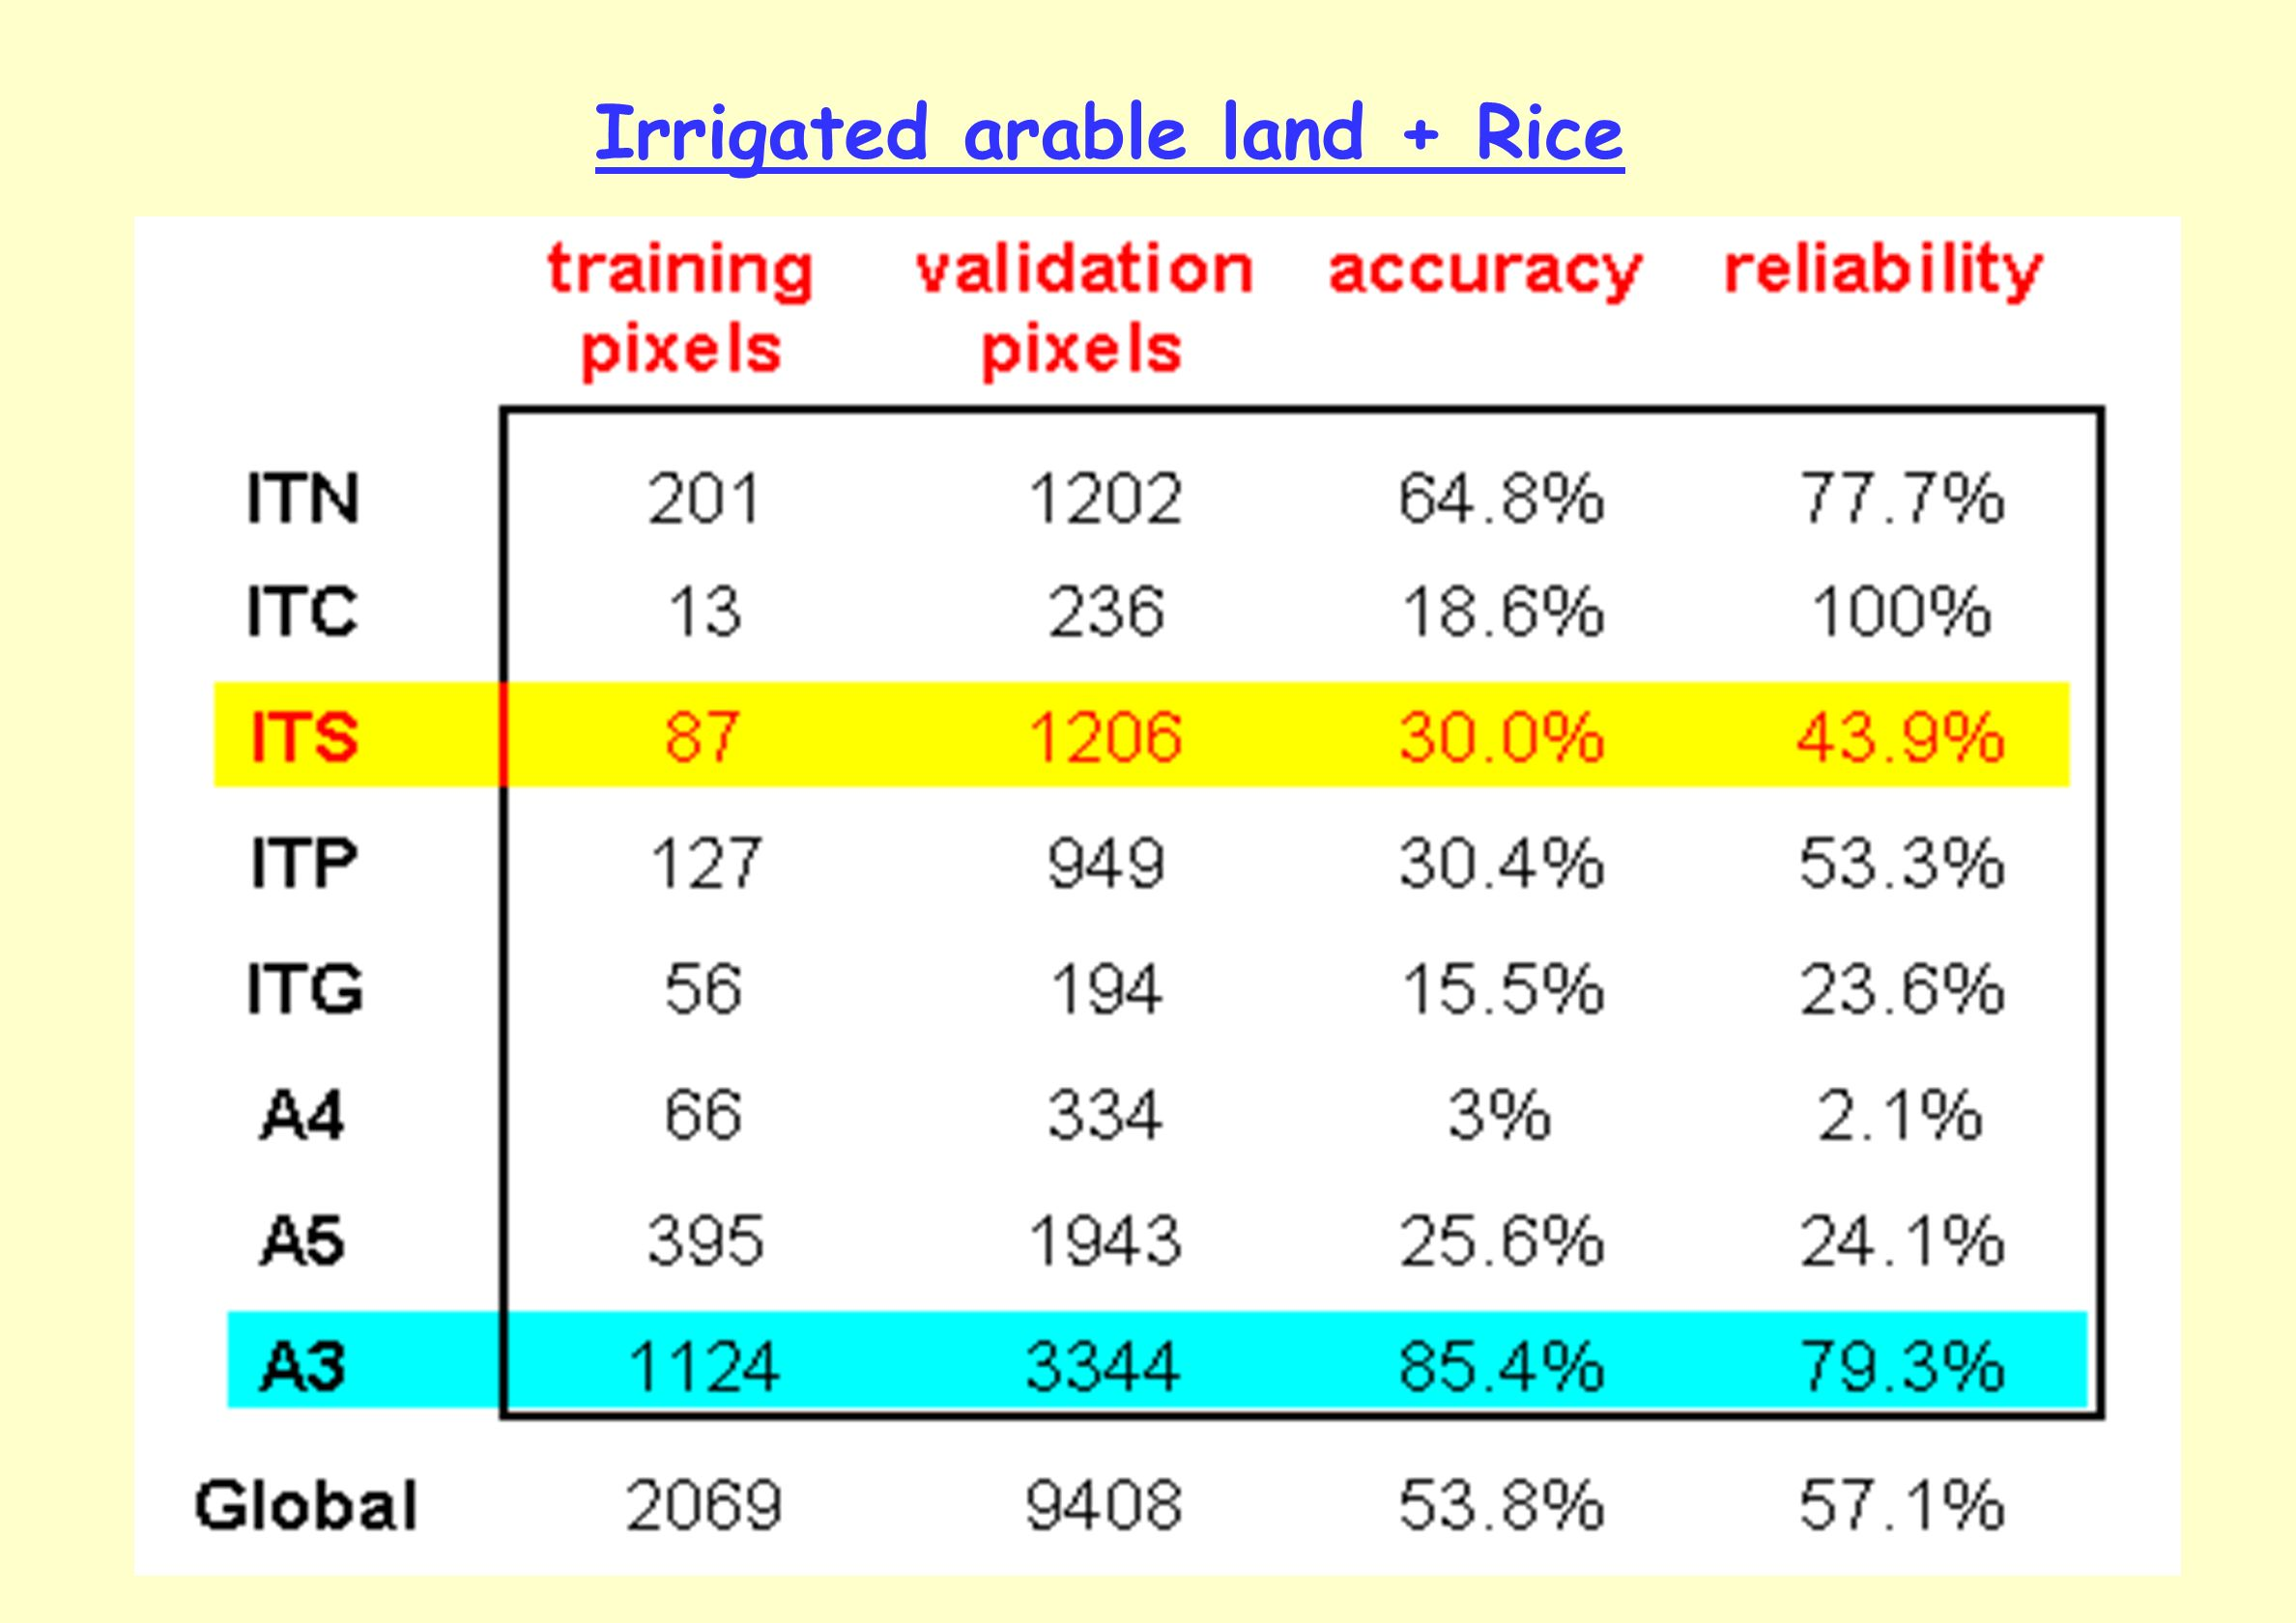 Irrigated arable land + Rice